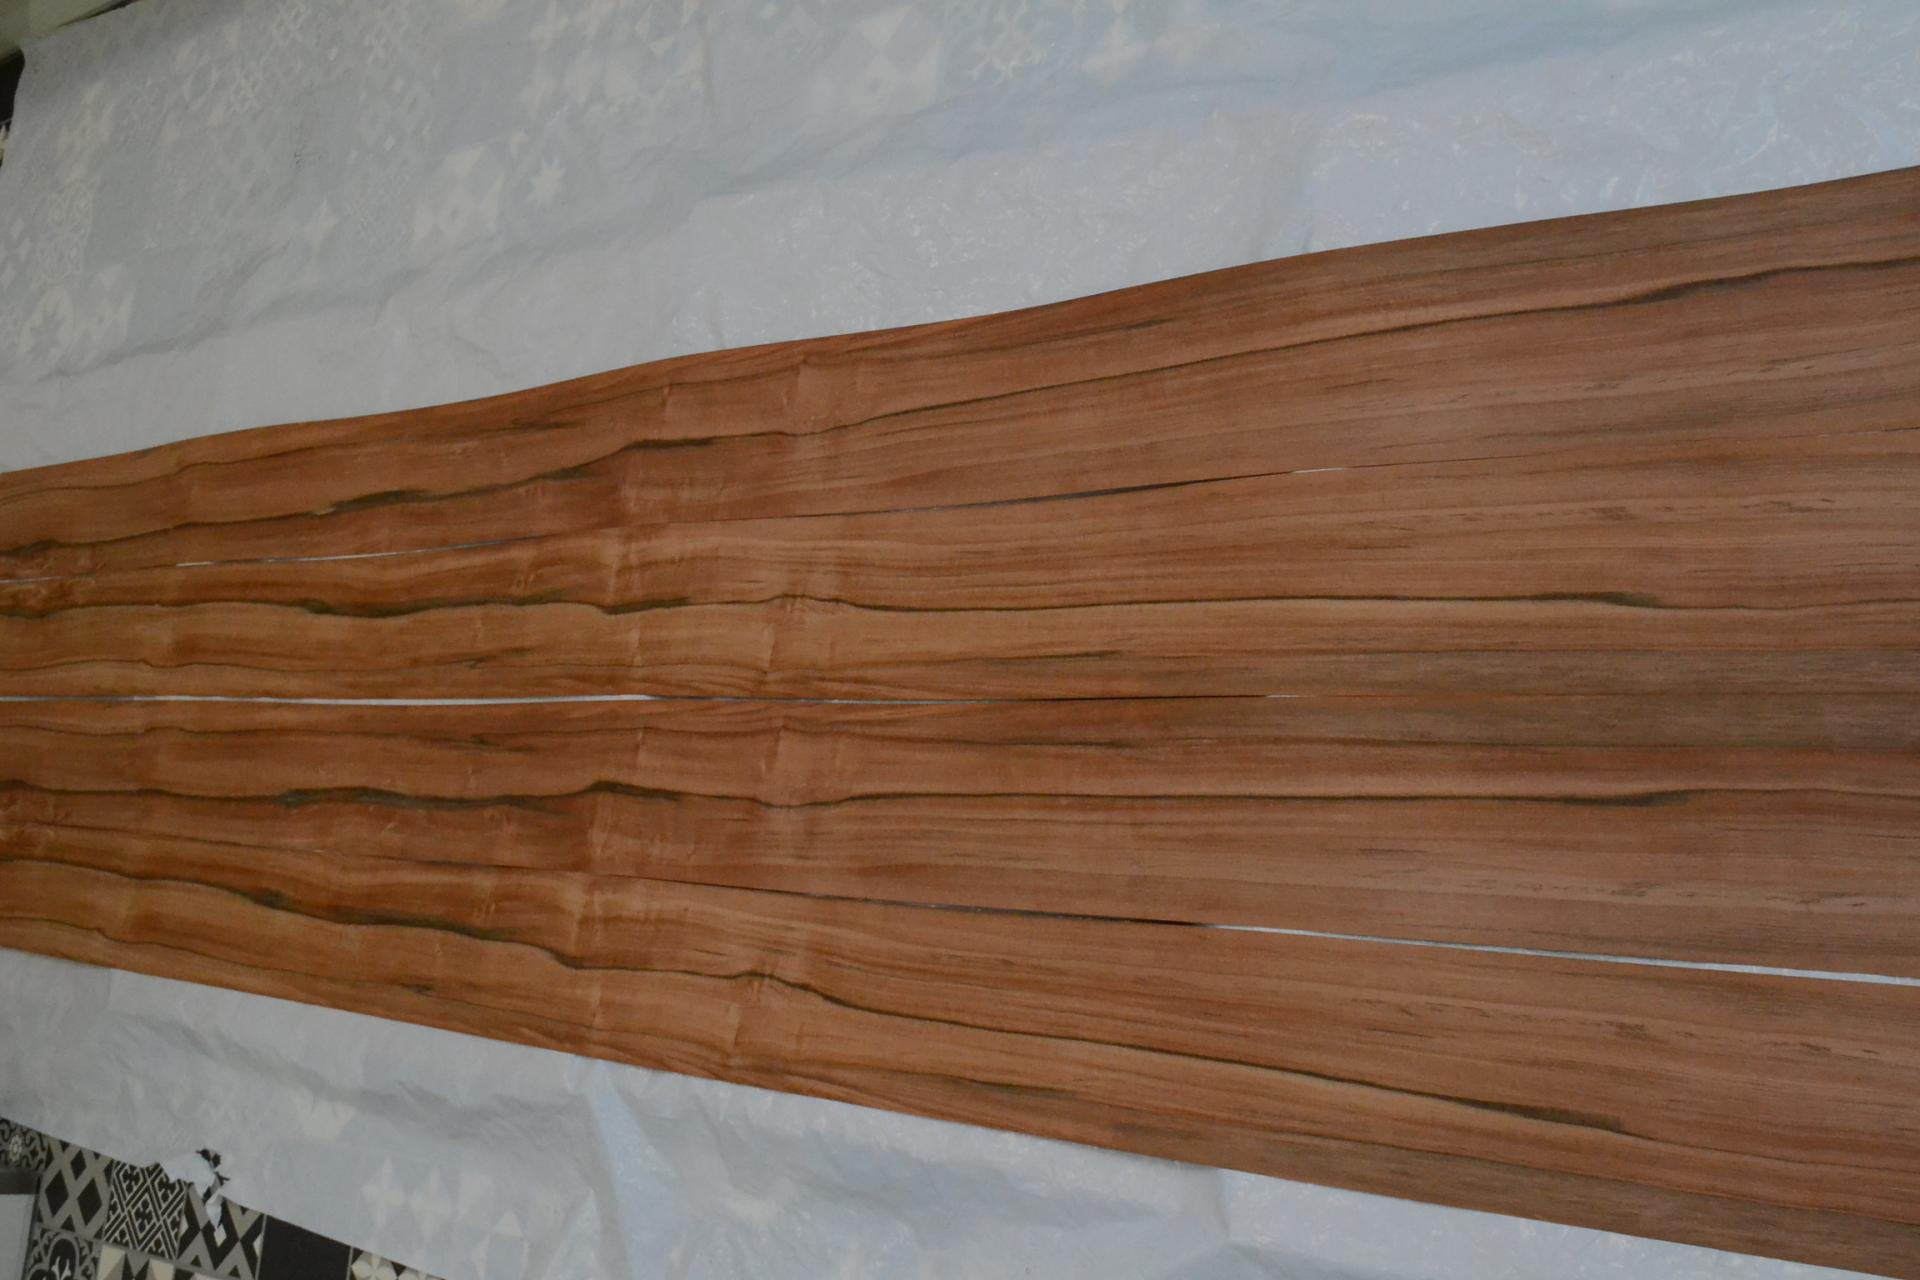 270 tineo placage bois feuille marqueterie 1